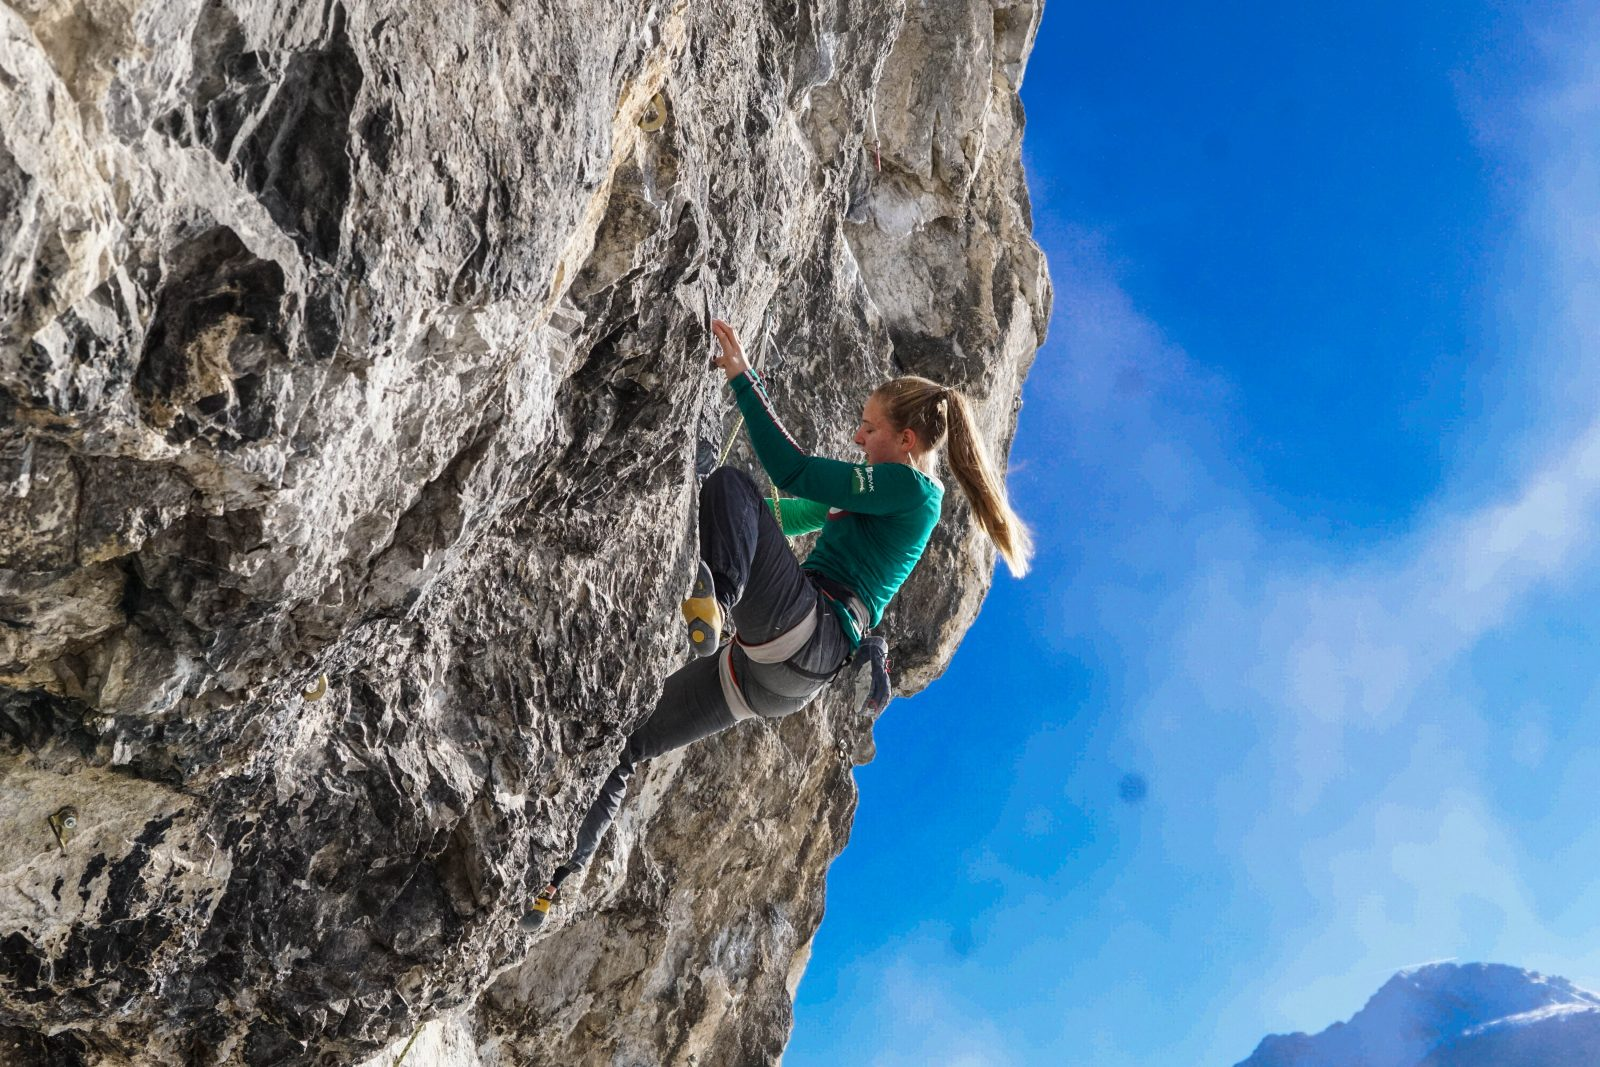 Celina Schoibl klettert die Route Gothic (8a) in der Grotte | Climbers Paradise